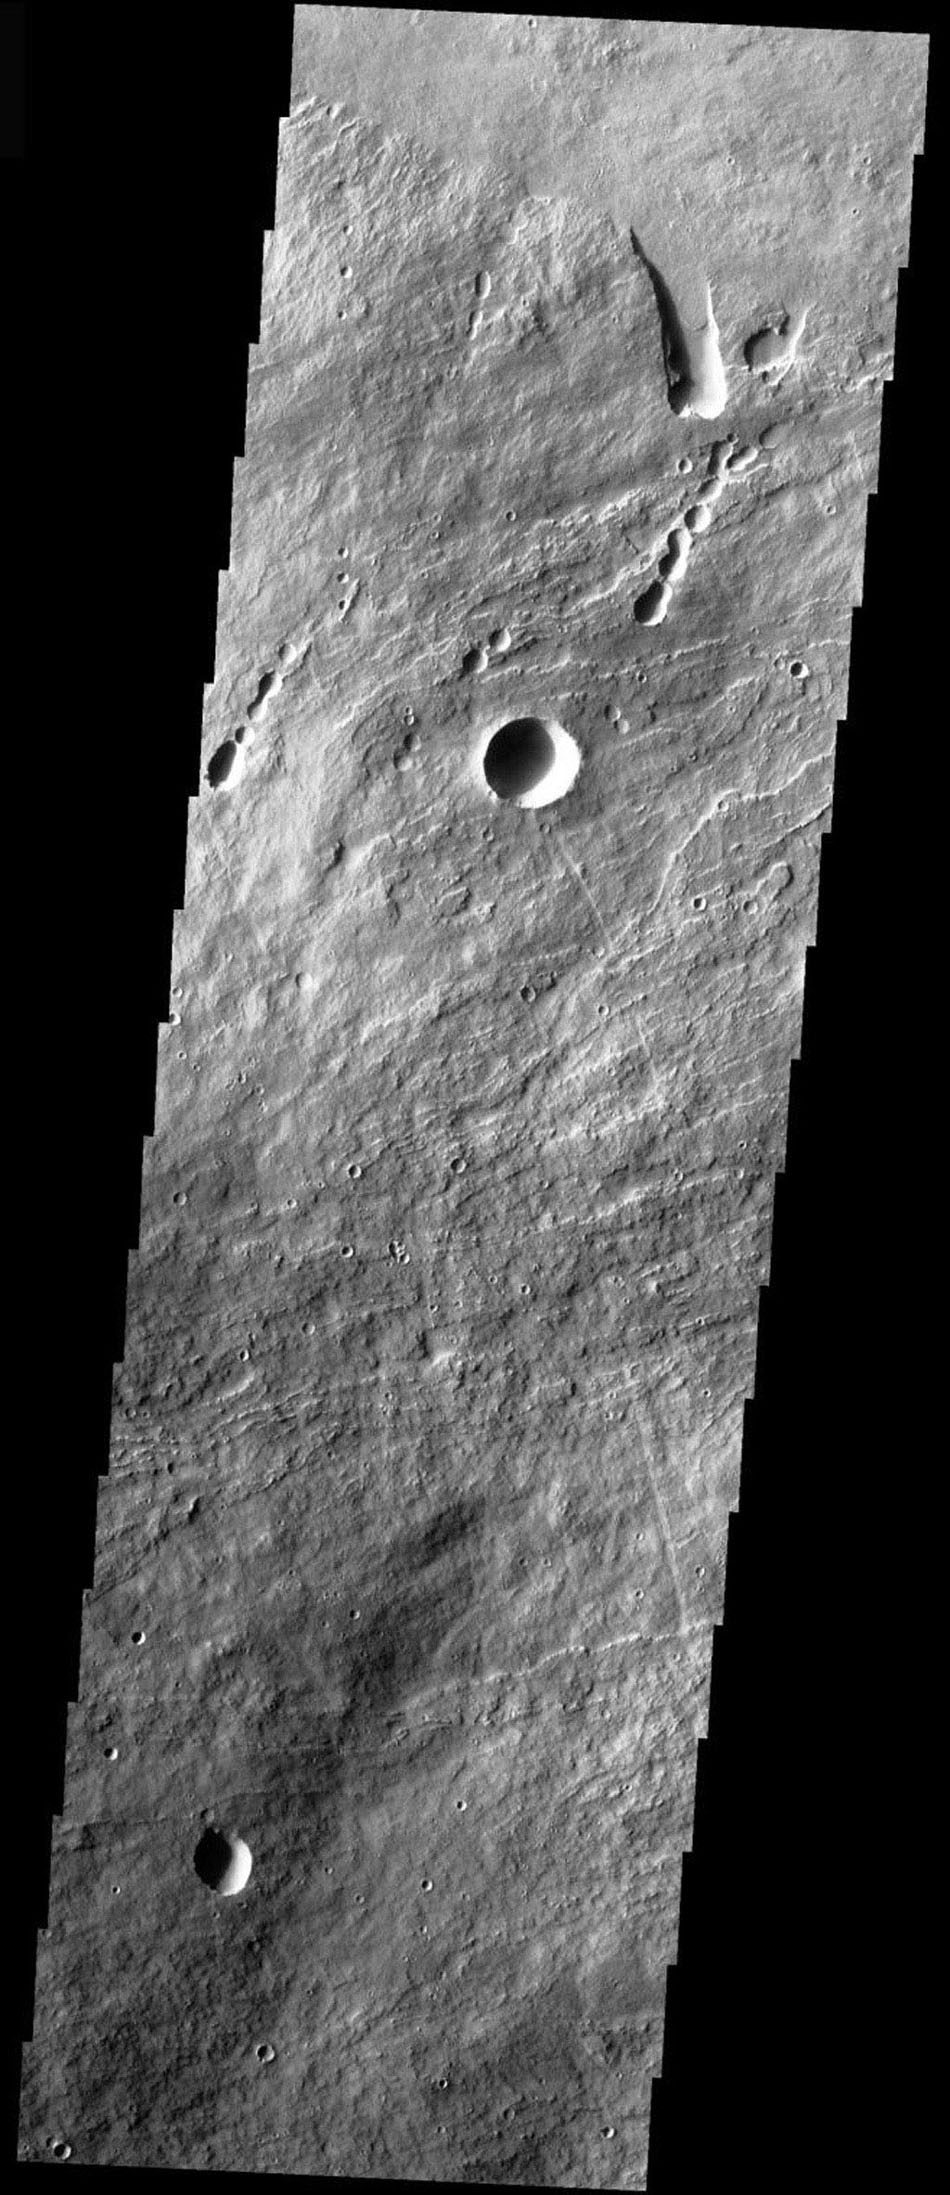 This image from NASA's Mars Odyssey spacecraft shows the part of the NE flank of Arsia Mons where it meets the plains. The flank of the volcano is comprised of long flows. Collapse features are present at the flank margin.